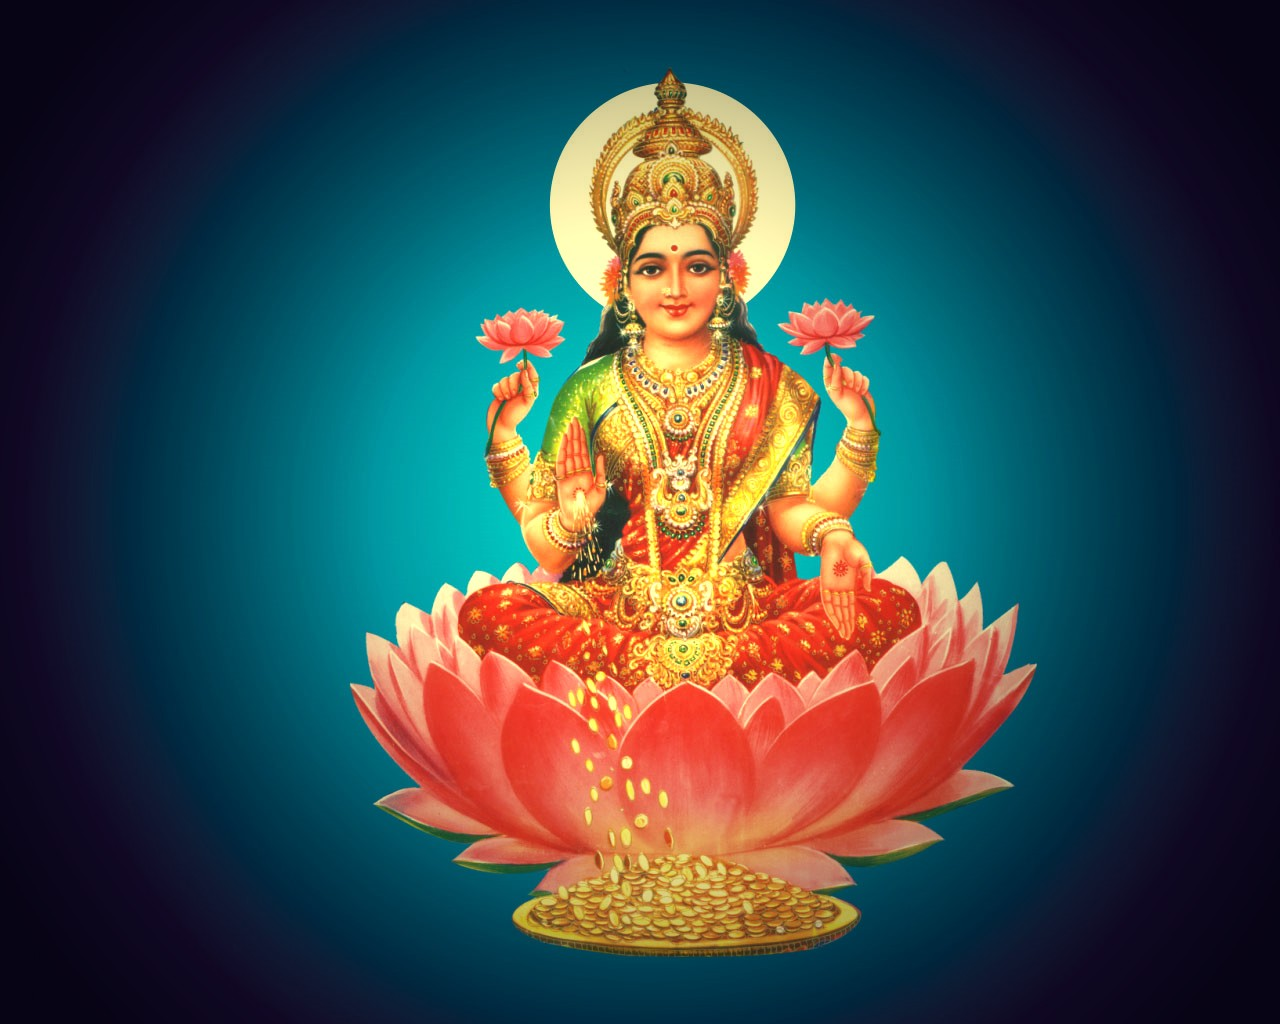 http://2.bp.blogspot.com/_yNR2f_O4AR4/TQIjP_ii4NI/AAAAAAAAAAs/ycXXsyUXxpA/s1600/lakshmi+devi+with+read+rose+rare+wallpapers.jpg